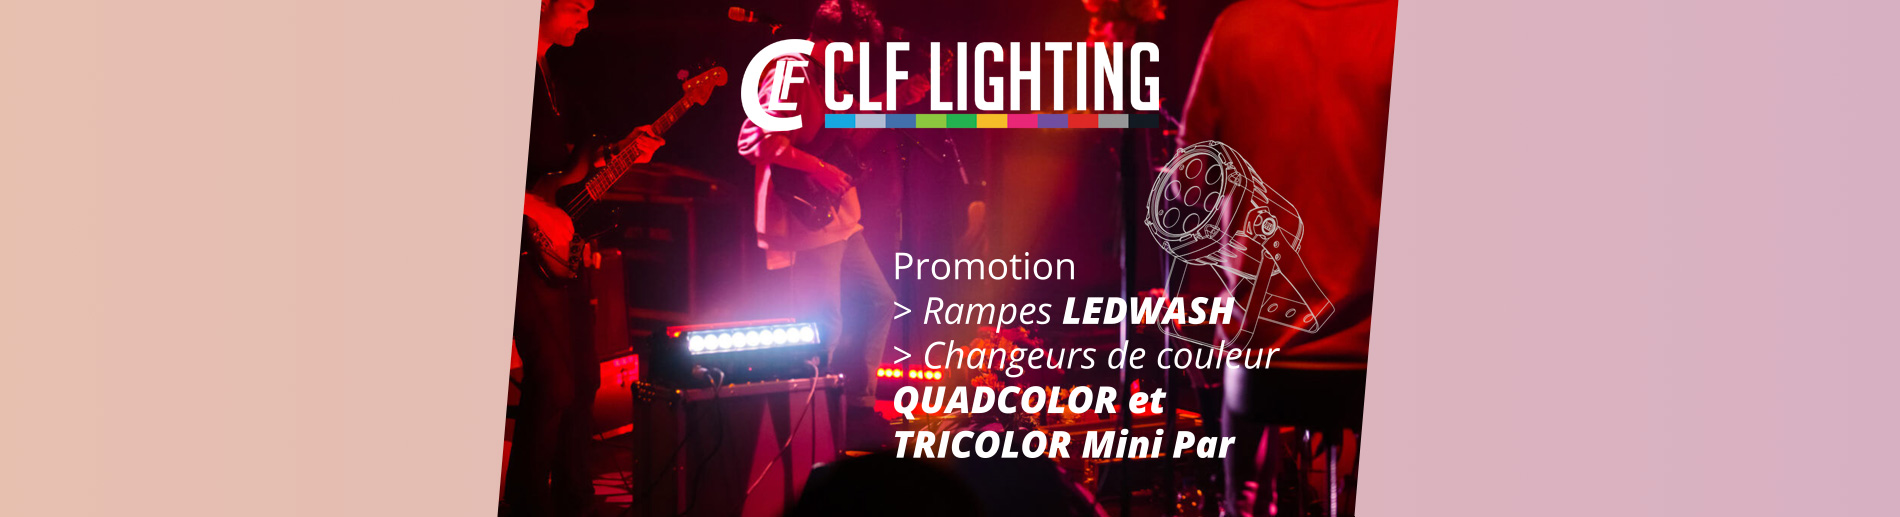 Promotion CLF Lighting